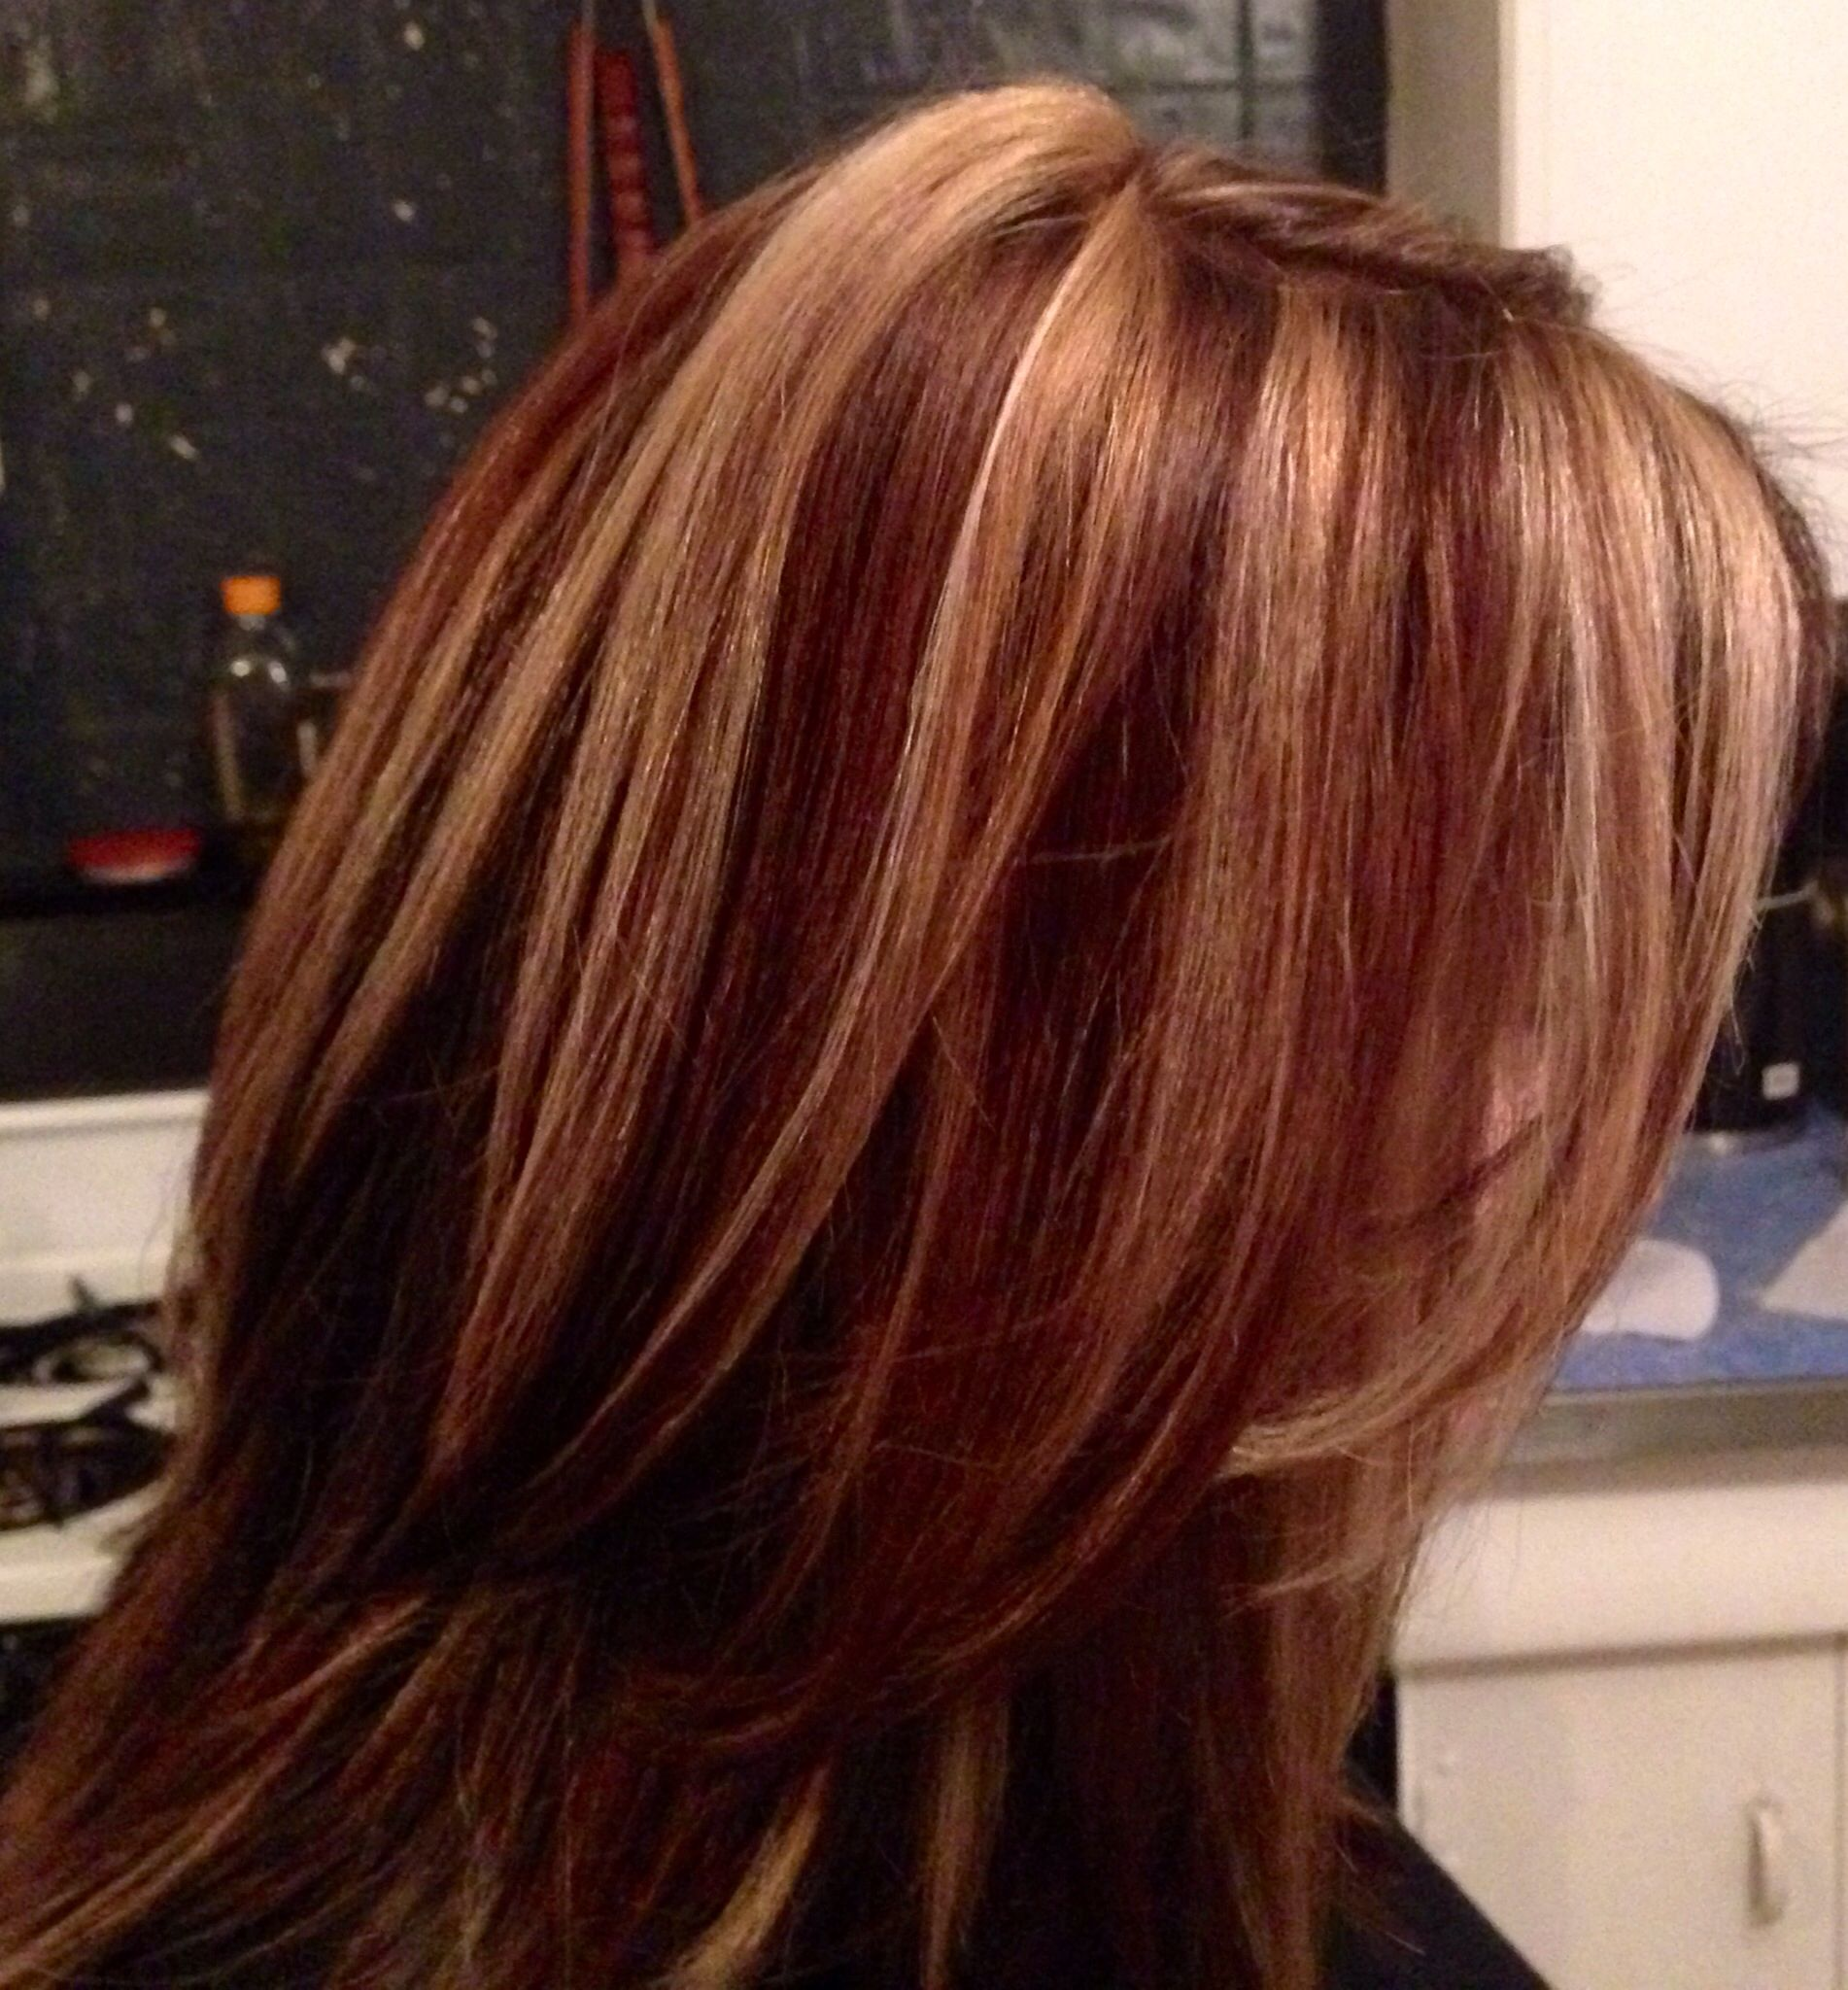 Pin By Carla Aldrich On My Work Dark Hair With Highlights Low Lights Hair Strawberry Blonde Hair